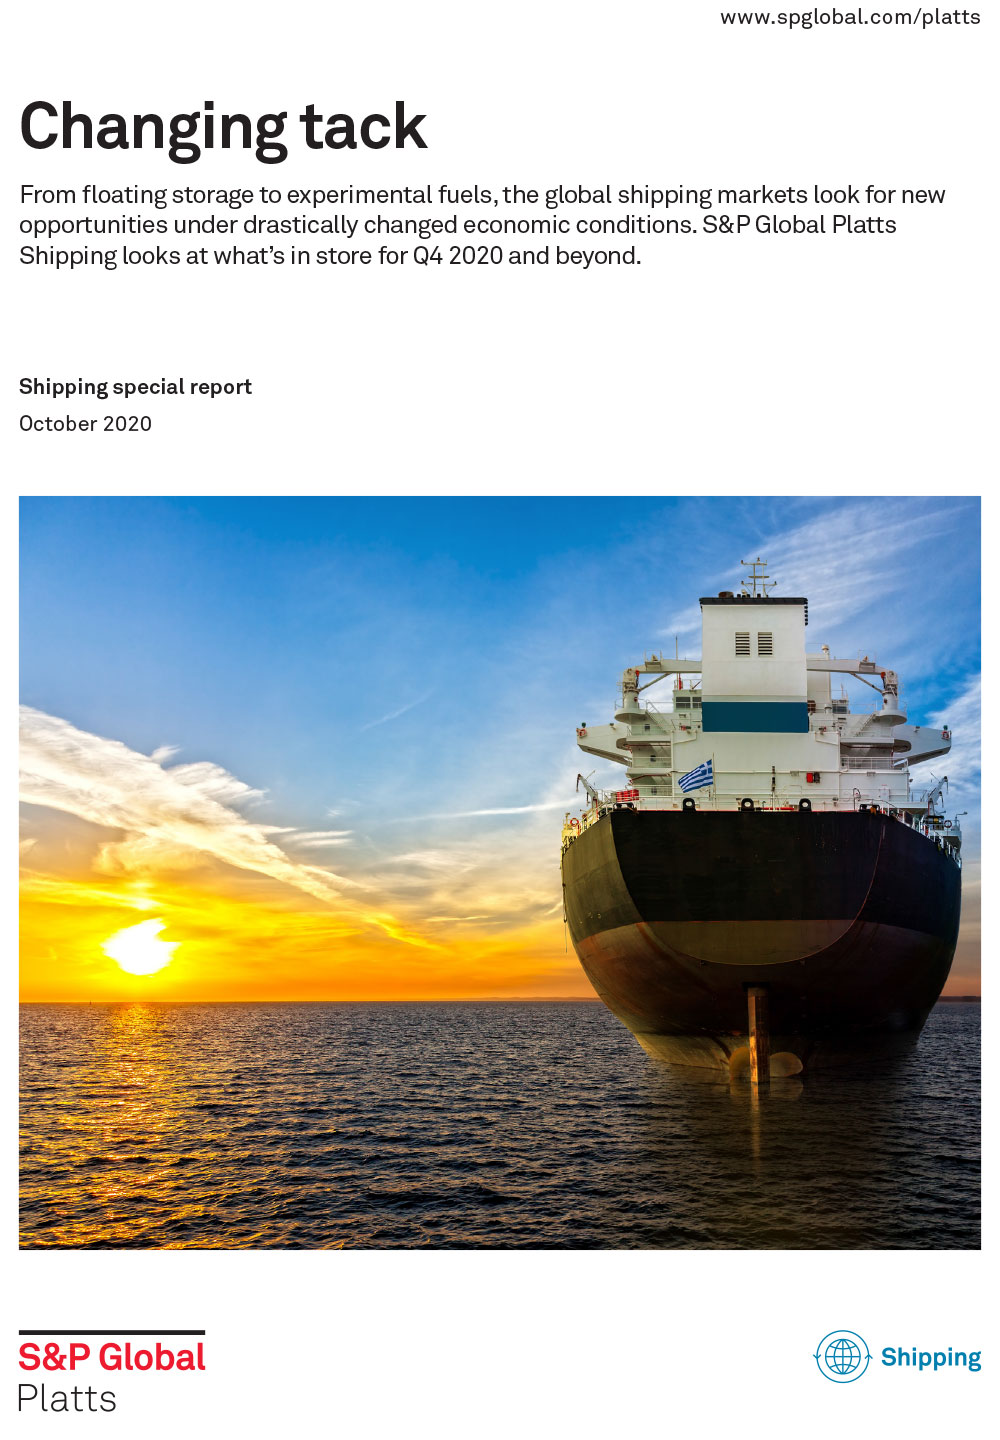 Shipping freight report outlook 2020 Q4